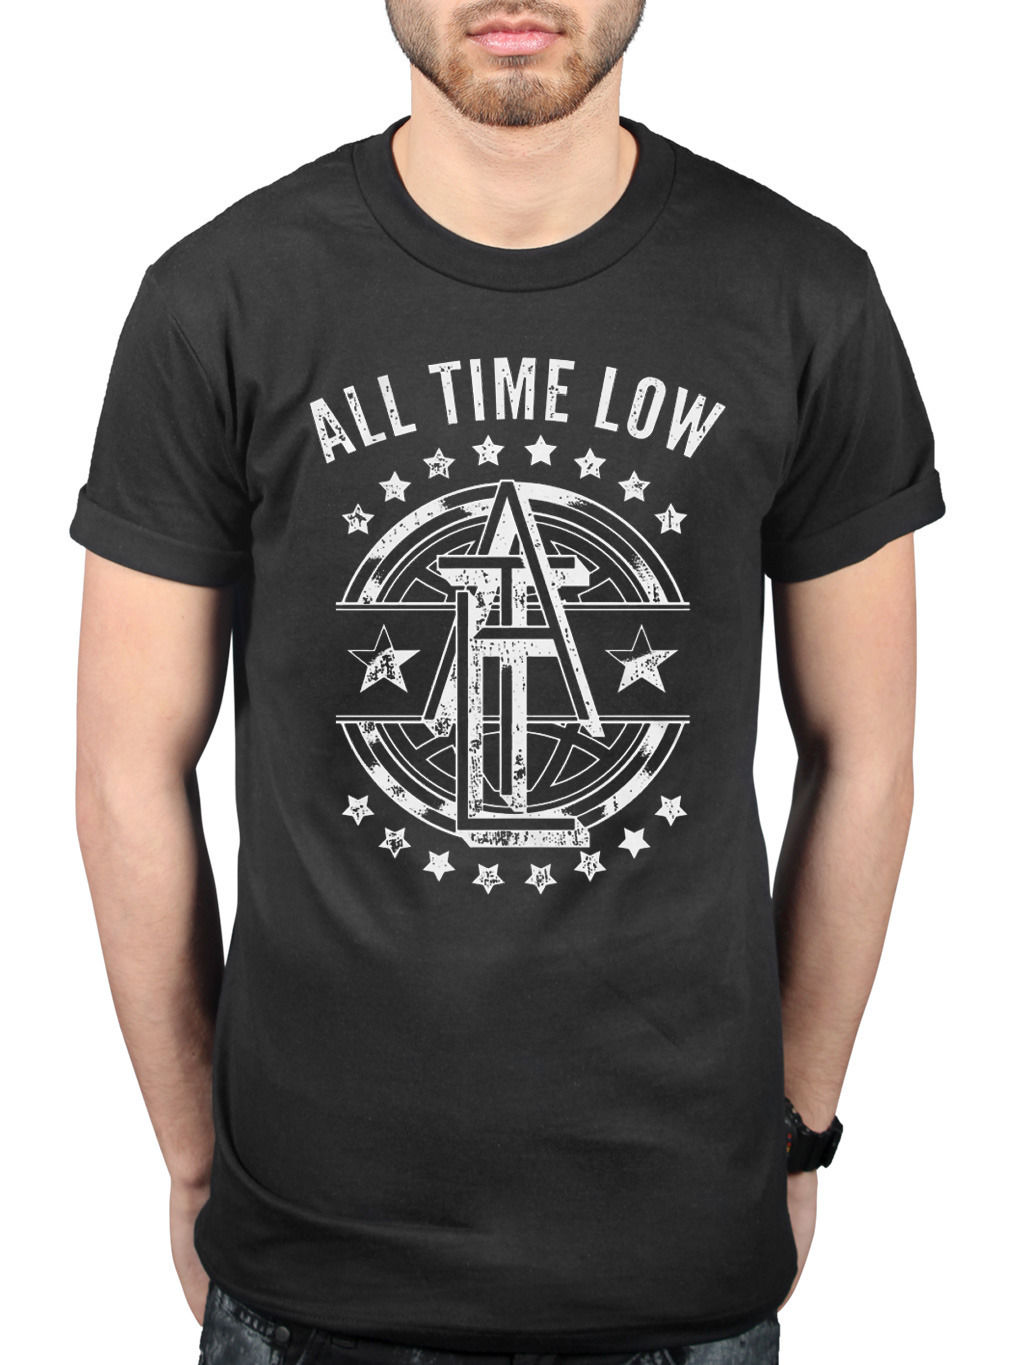 All Time Low Emblem T-Shirt Holds It Down Glamour Kills Dont Panic Tee Shirts Hipster O-Neck